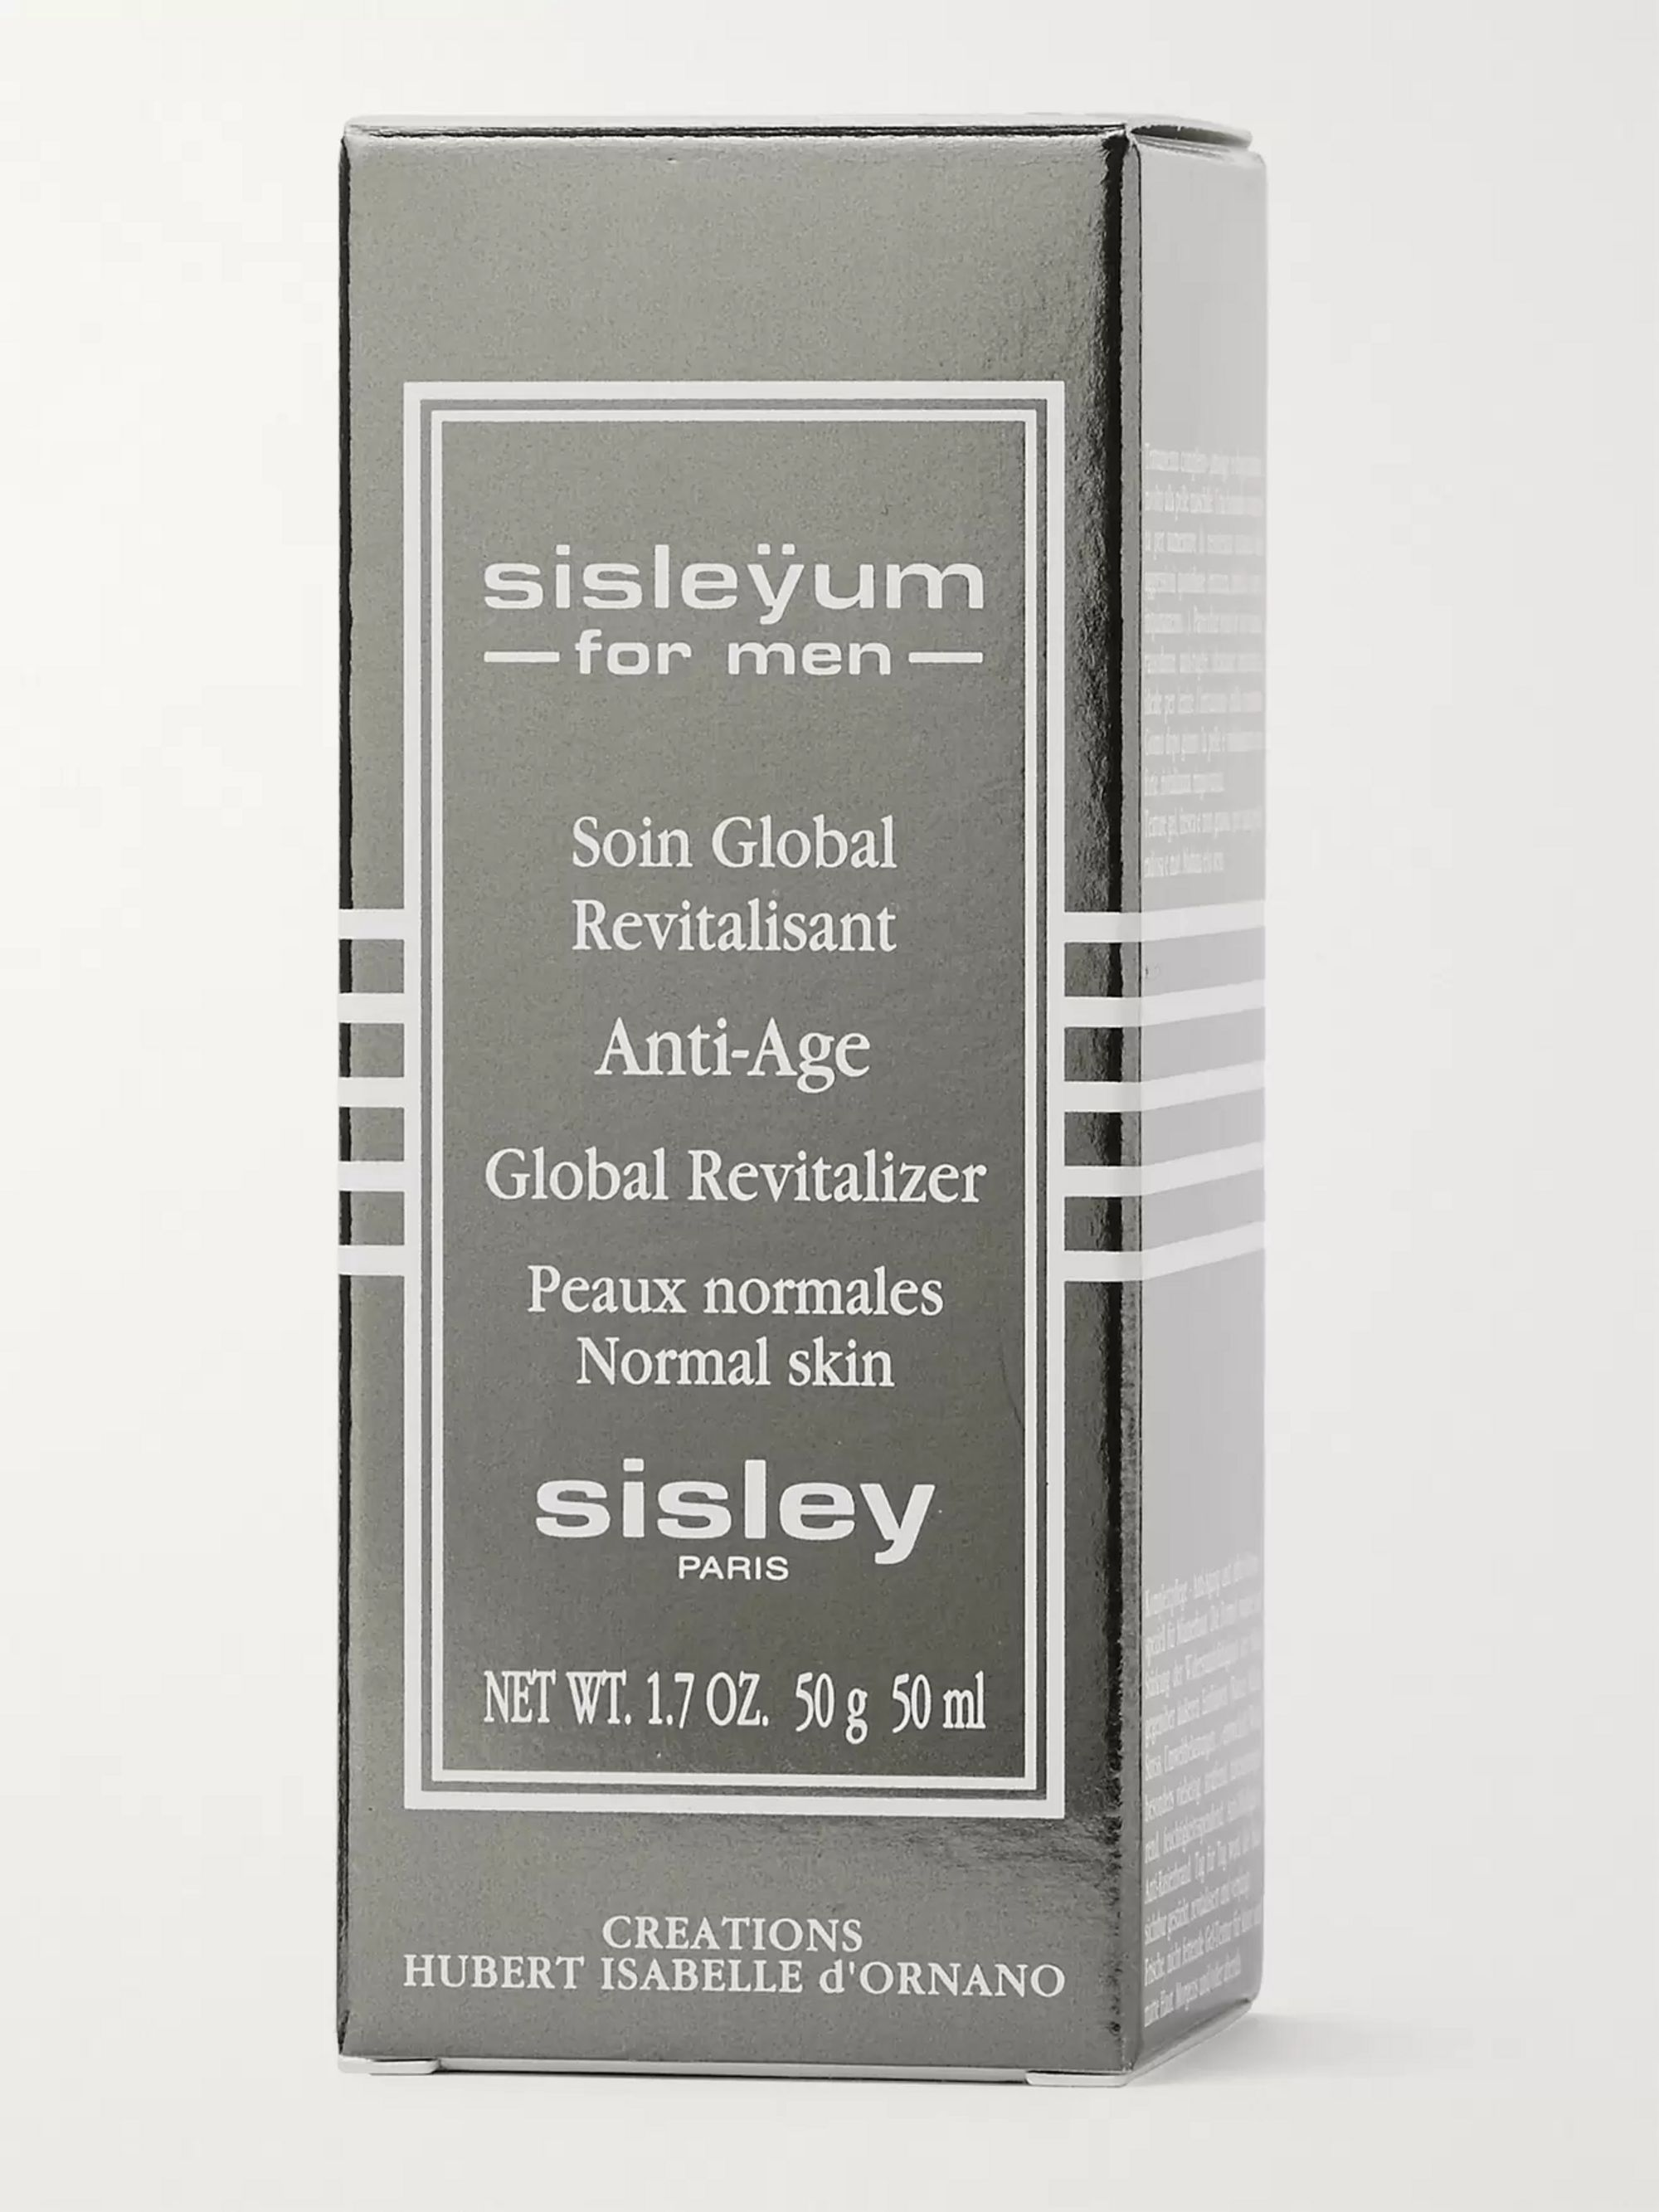 Sisley Sisleÿum Anti-Age for Normal Skin, 50ml